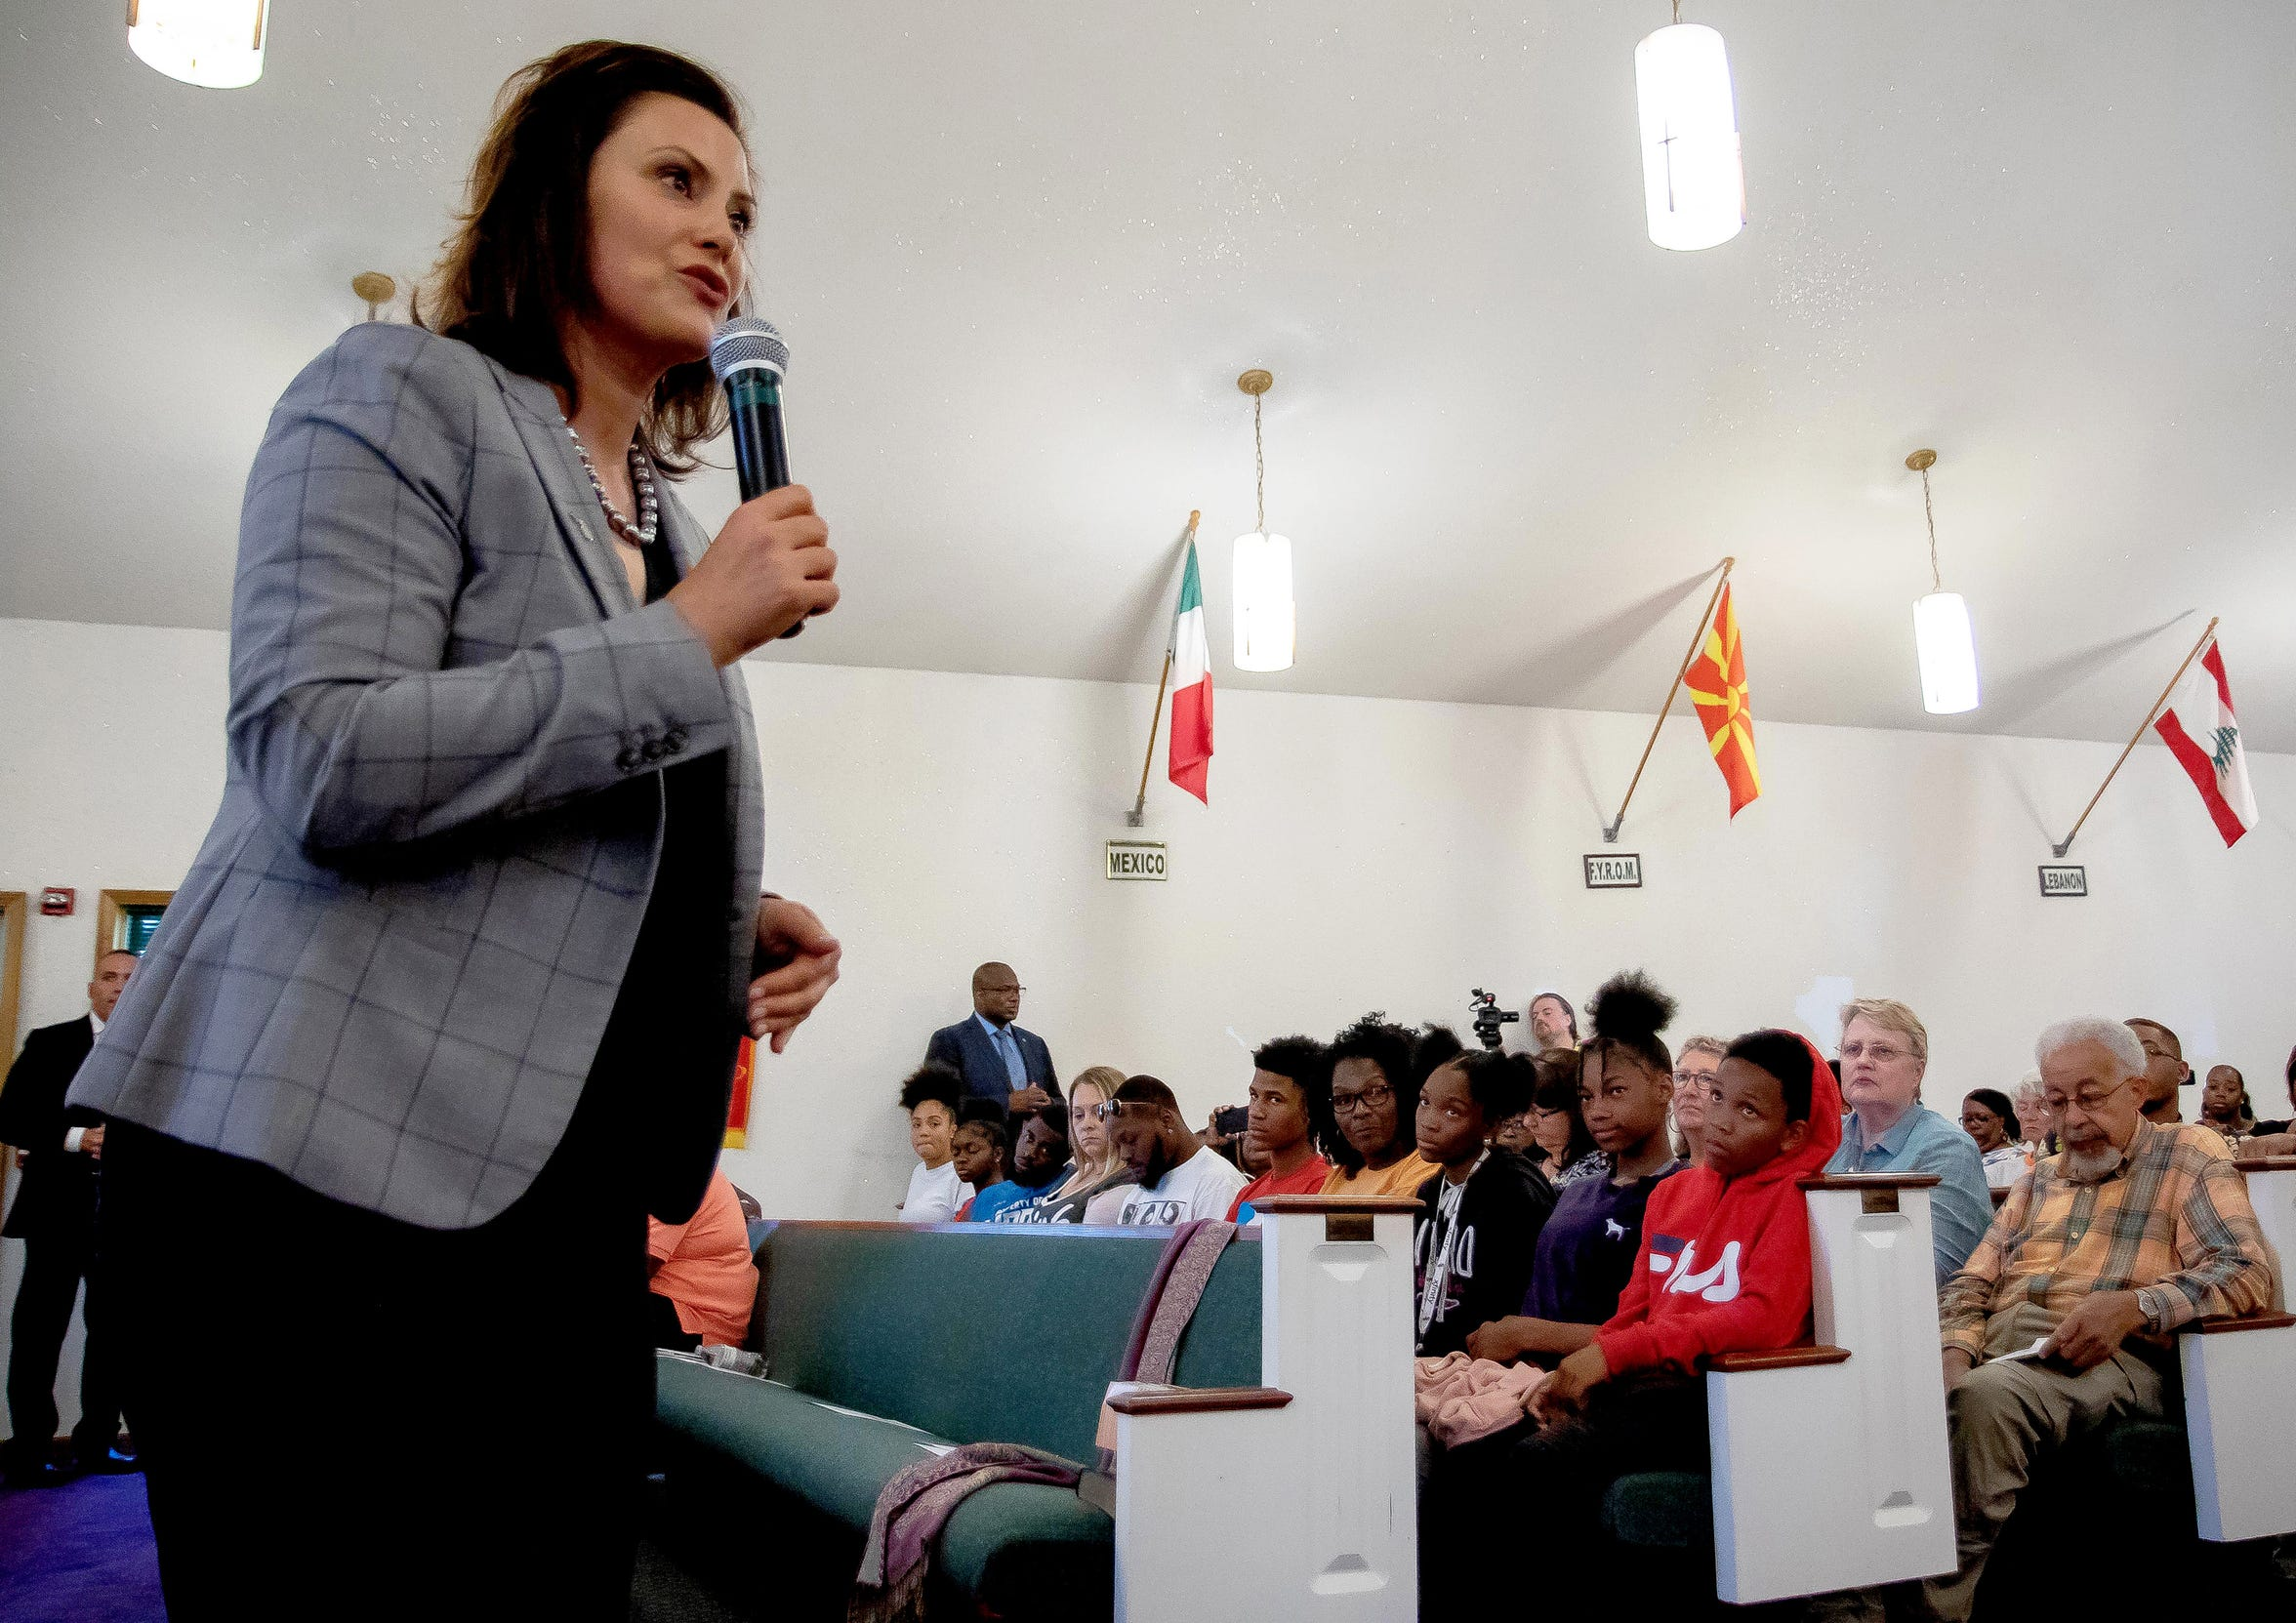 Gov. Gretchen Whitmer addresses the community and explains the only course of action left is to close Benton Harbor High School.